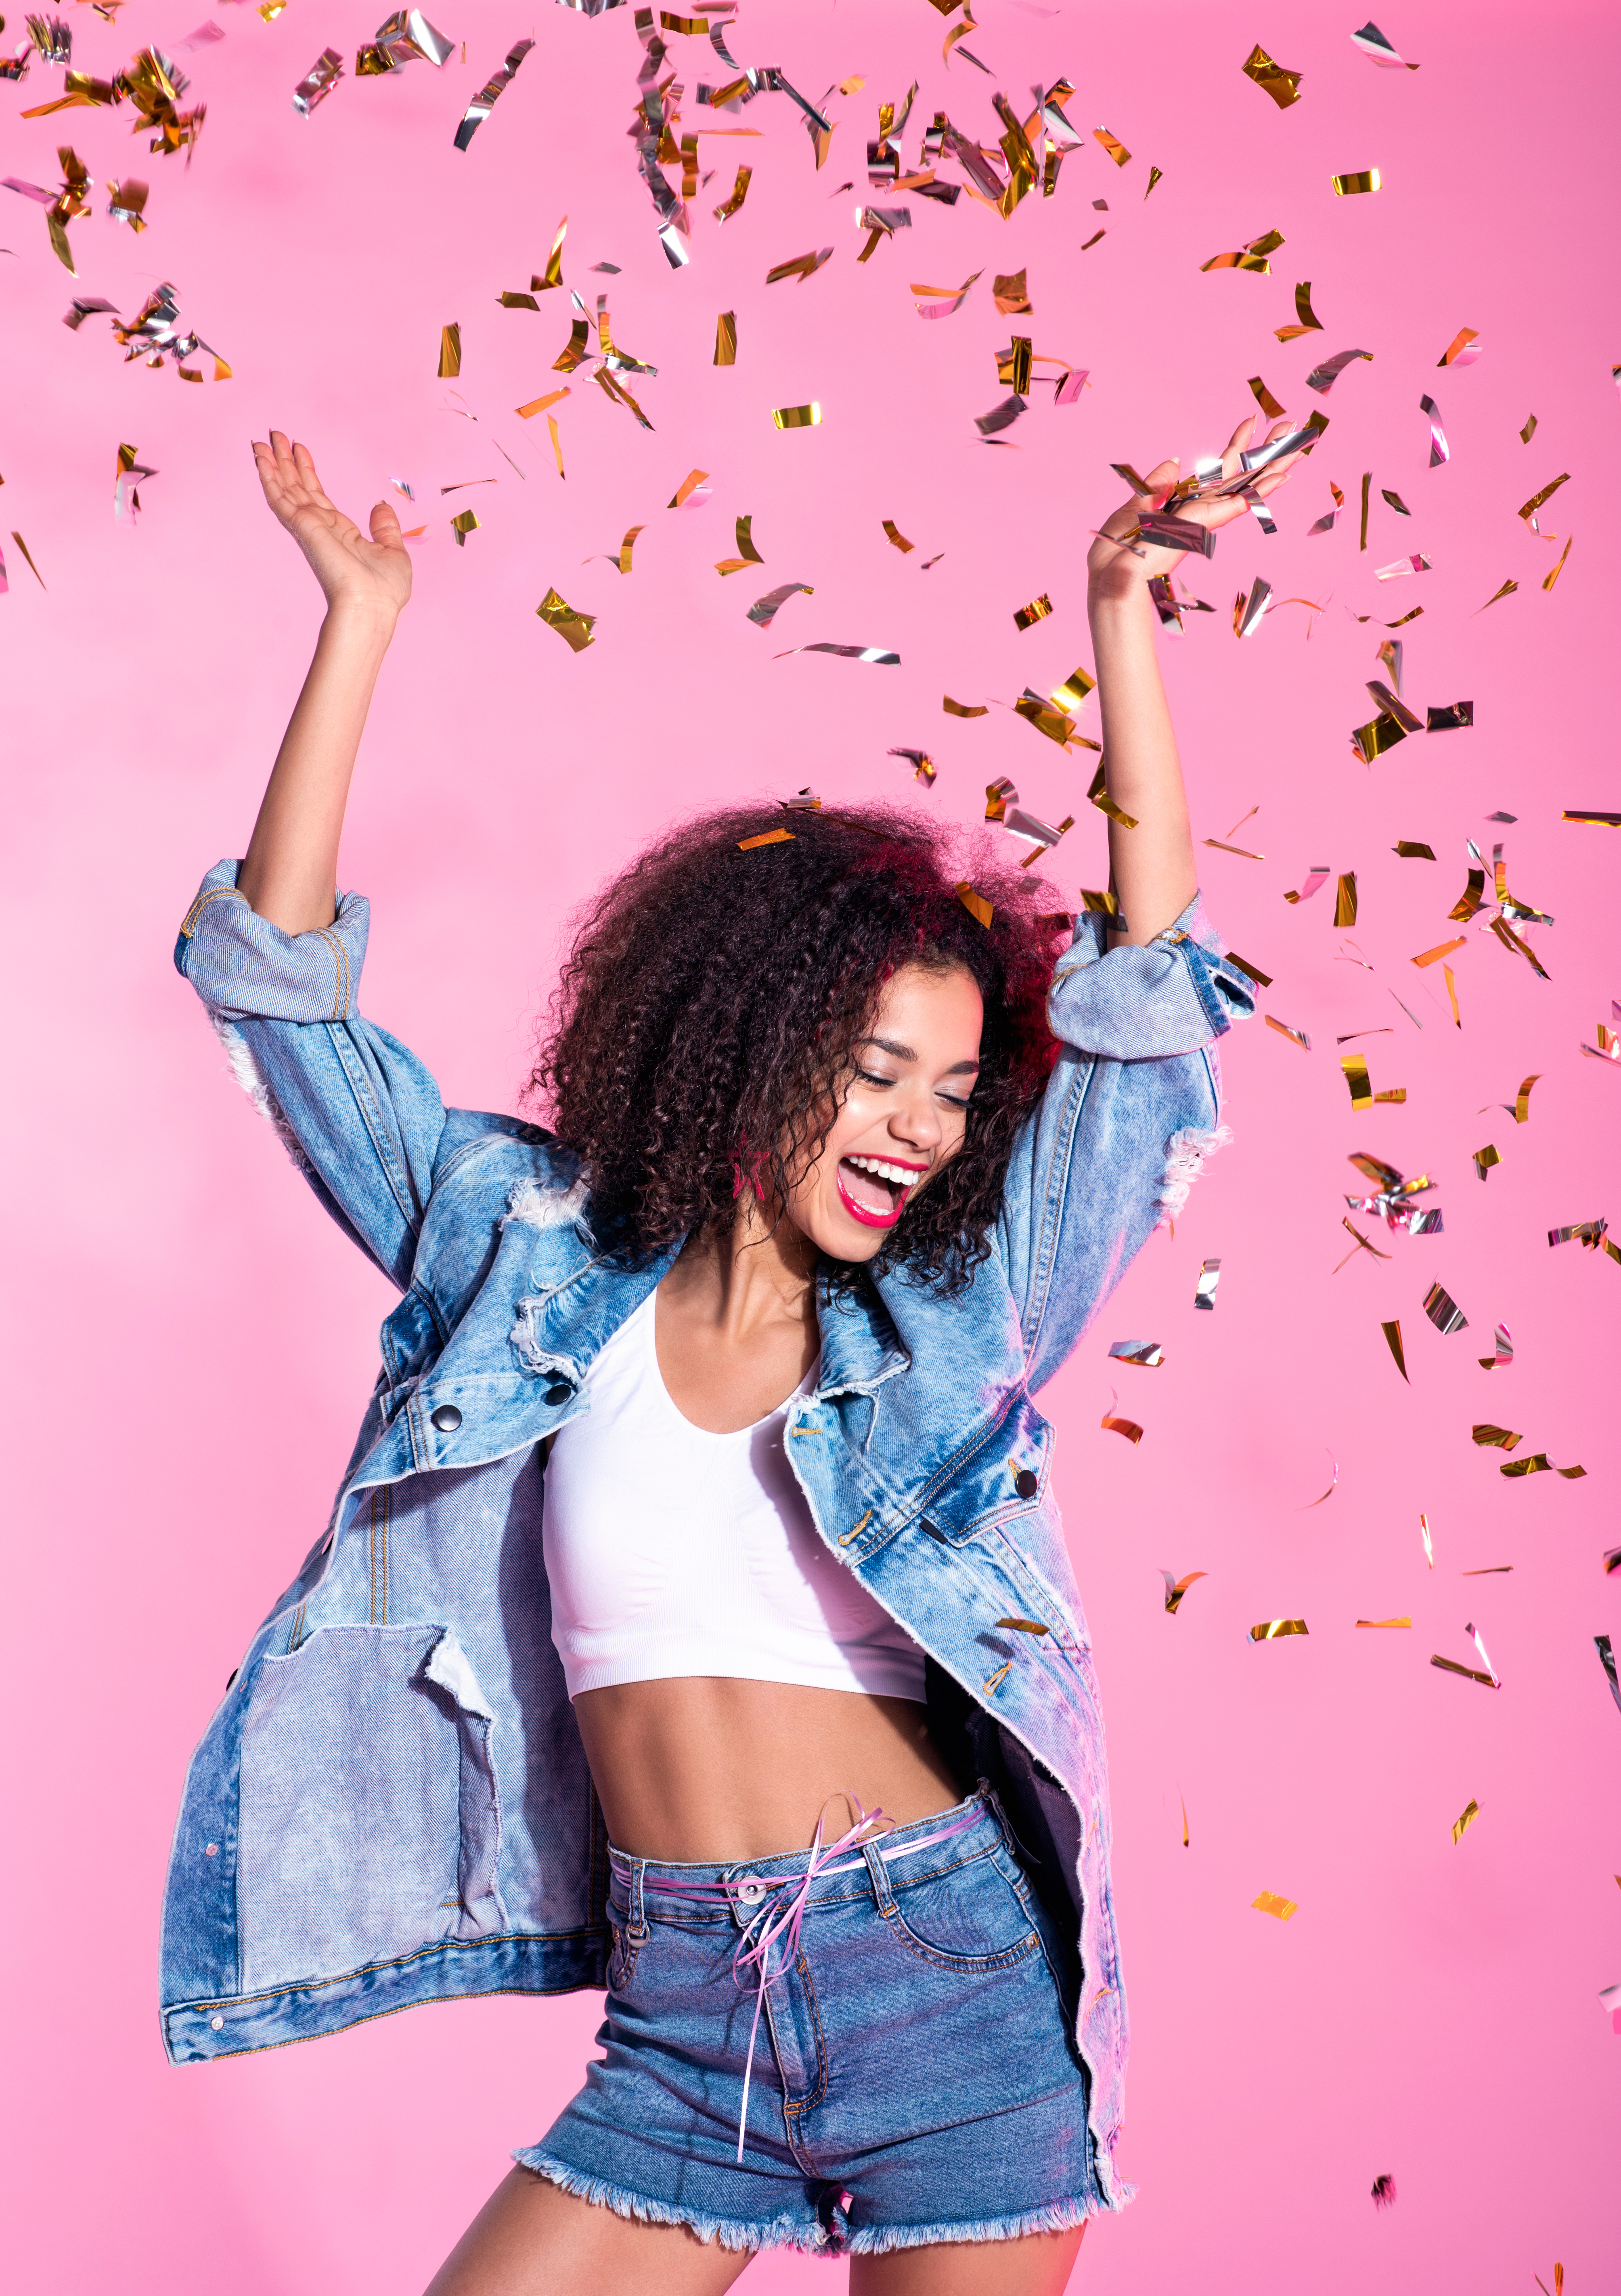 Portrait of happy young afro woman among confetti